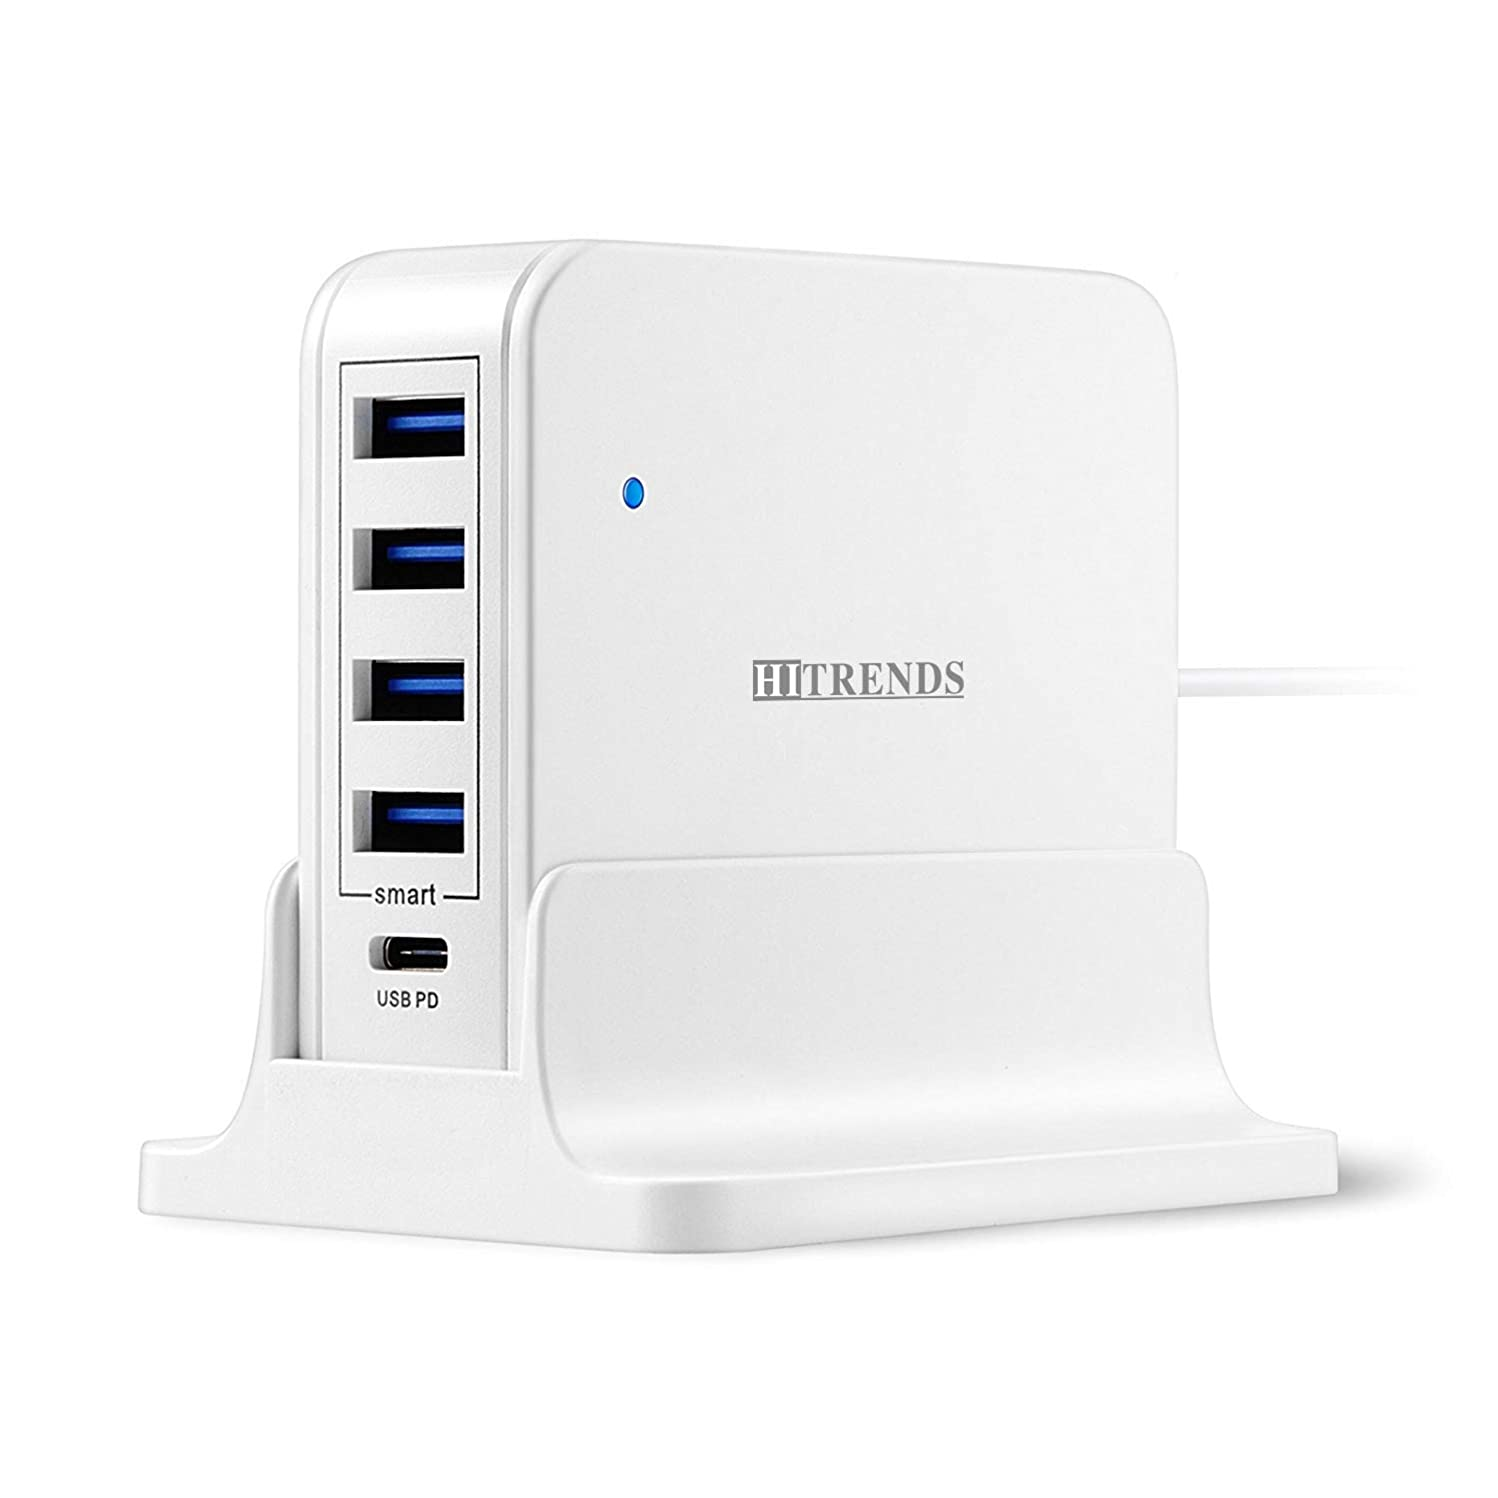 Multi Port USB Charger, 5-Port 63W Type-C PD Charger Hub, HITRENDS Desktop Charger Station with 45W Max PD Port Compatible with MacBook Pro/Air, iPad Pro, Nintendo Switch & 4 USB Ports for Multiple D